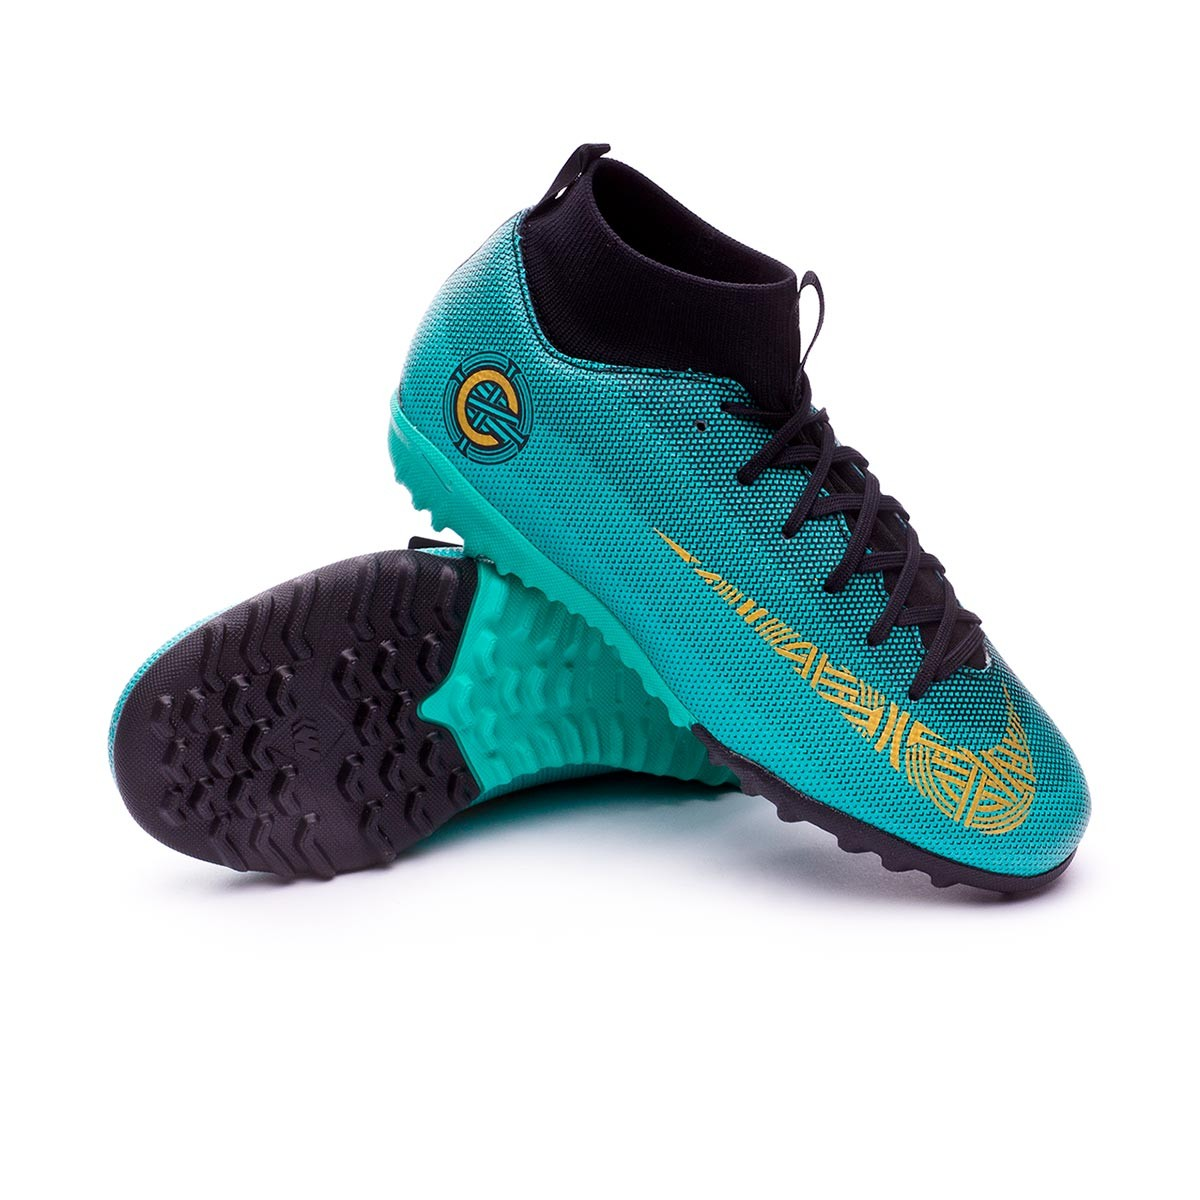 save off 230e9 debc5 Tenis Nike Mercurial Superfly VI Academy GS CR7 Turf Niño Clear  jade-Metallic vivid gold-Black - Tienda de fútbol Fútbol Emotion